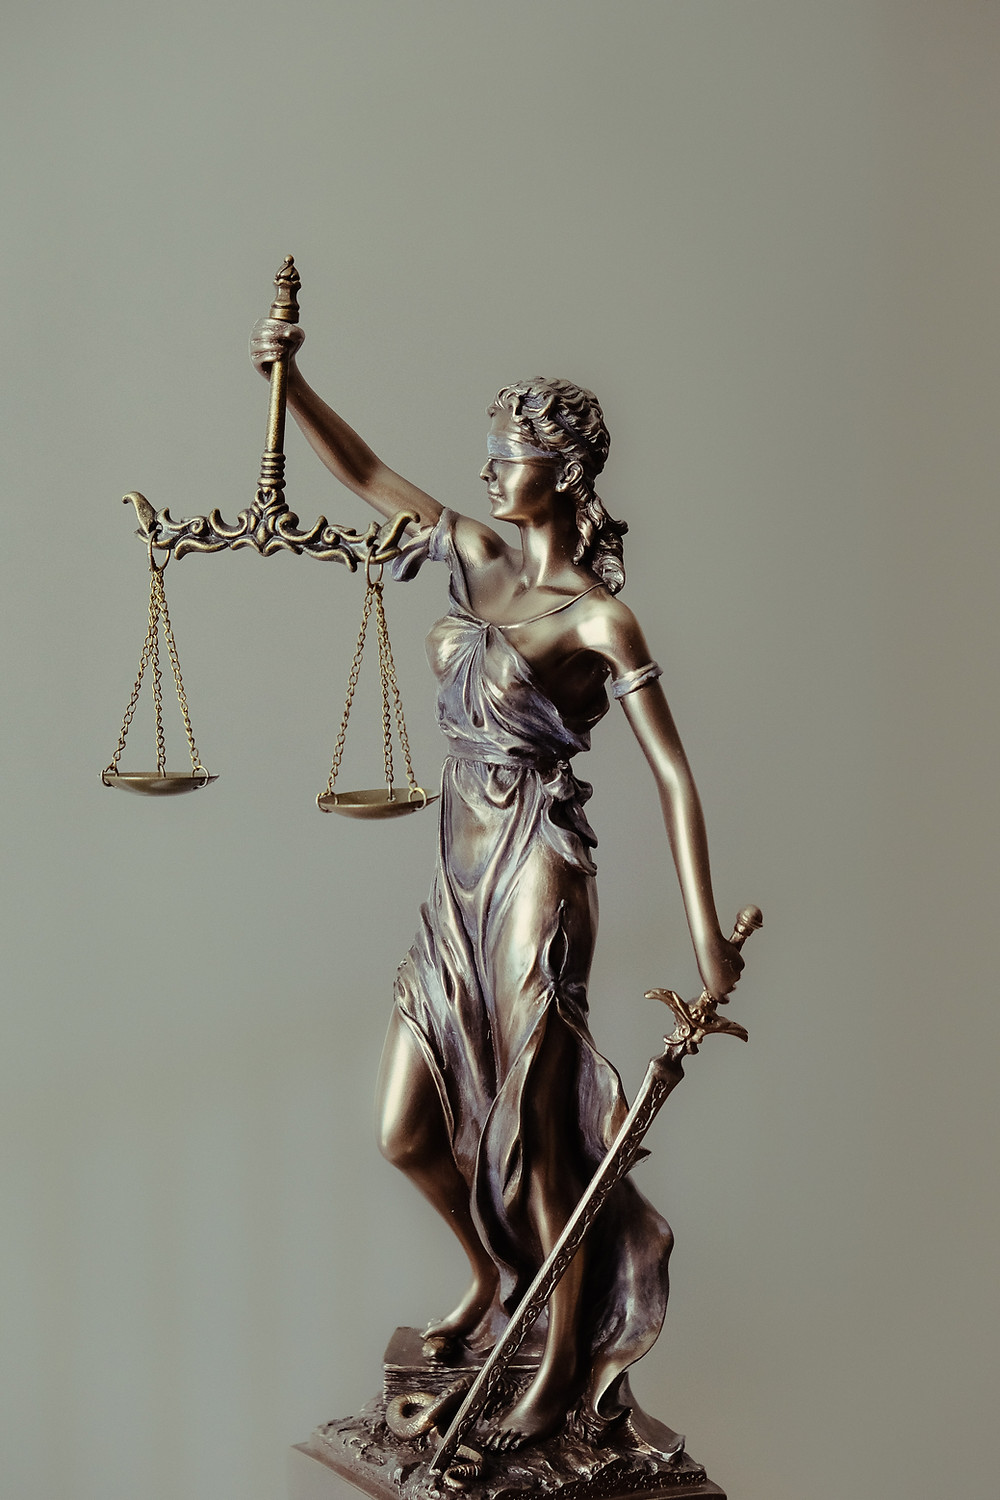 US Court lady justice